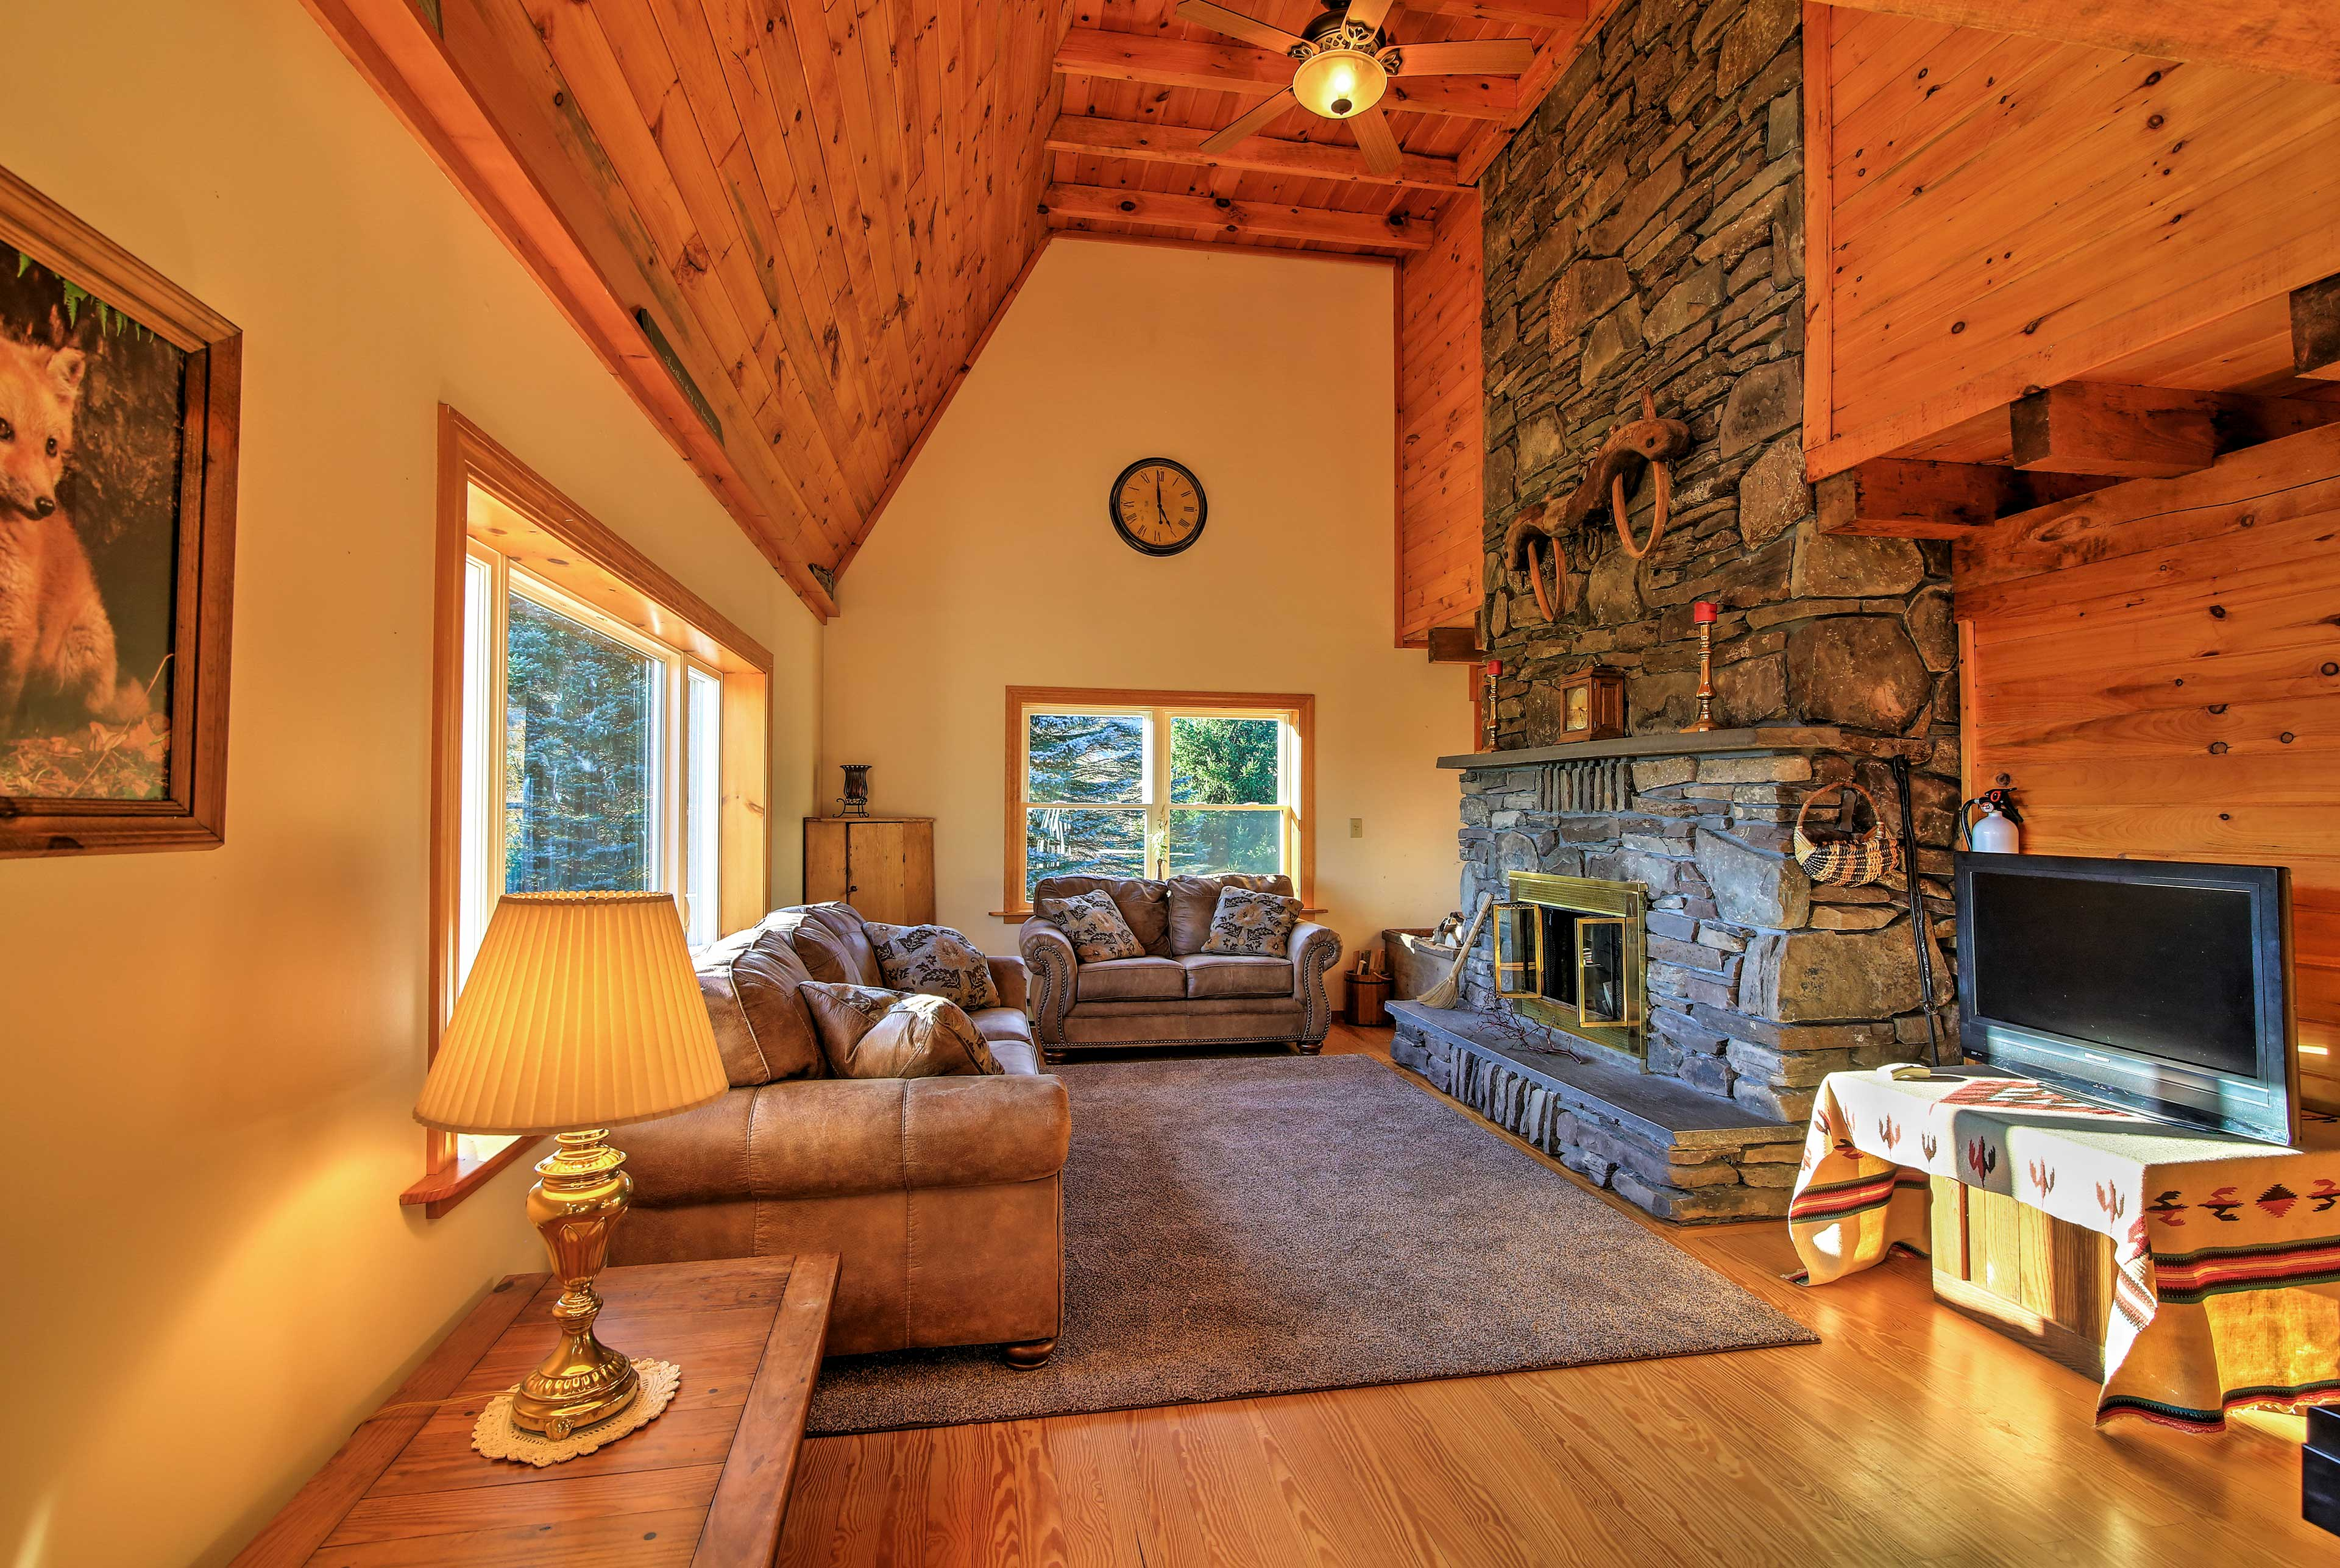 Relax in nearly 1,700 square feet of living space with wood-beamed ceilings.